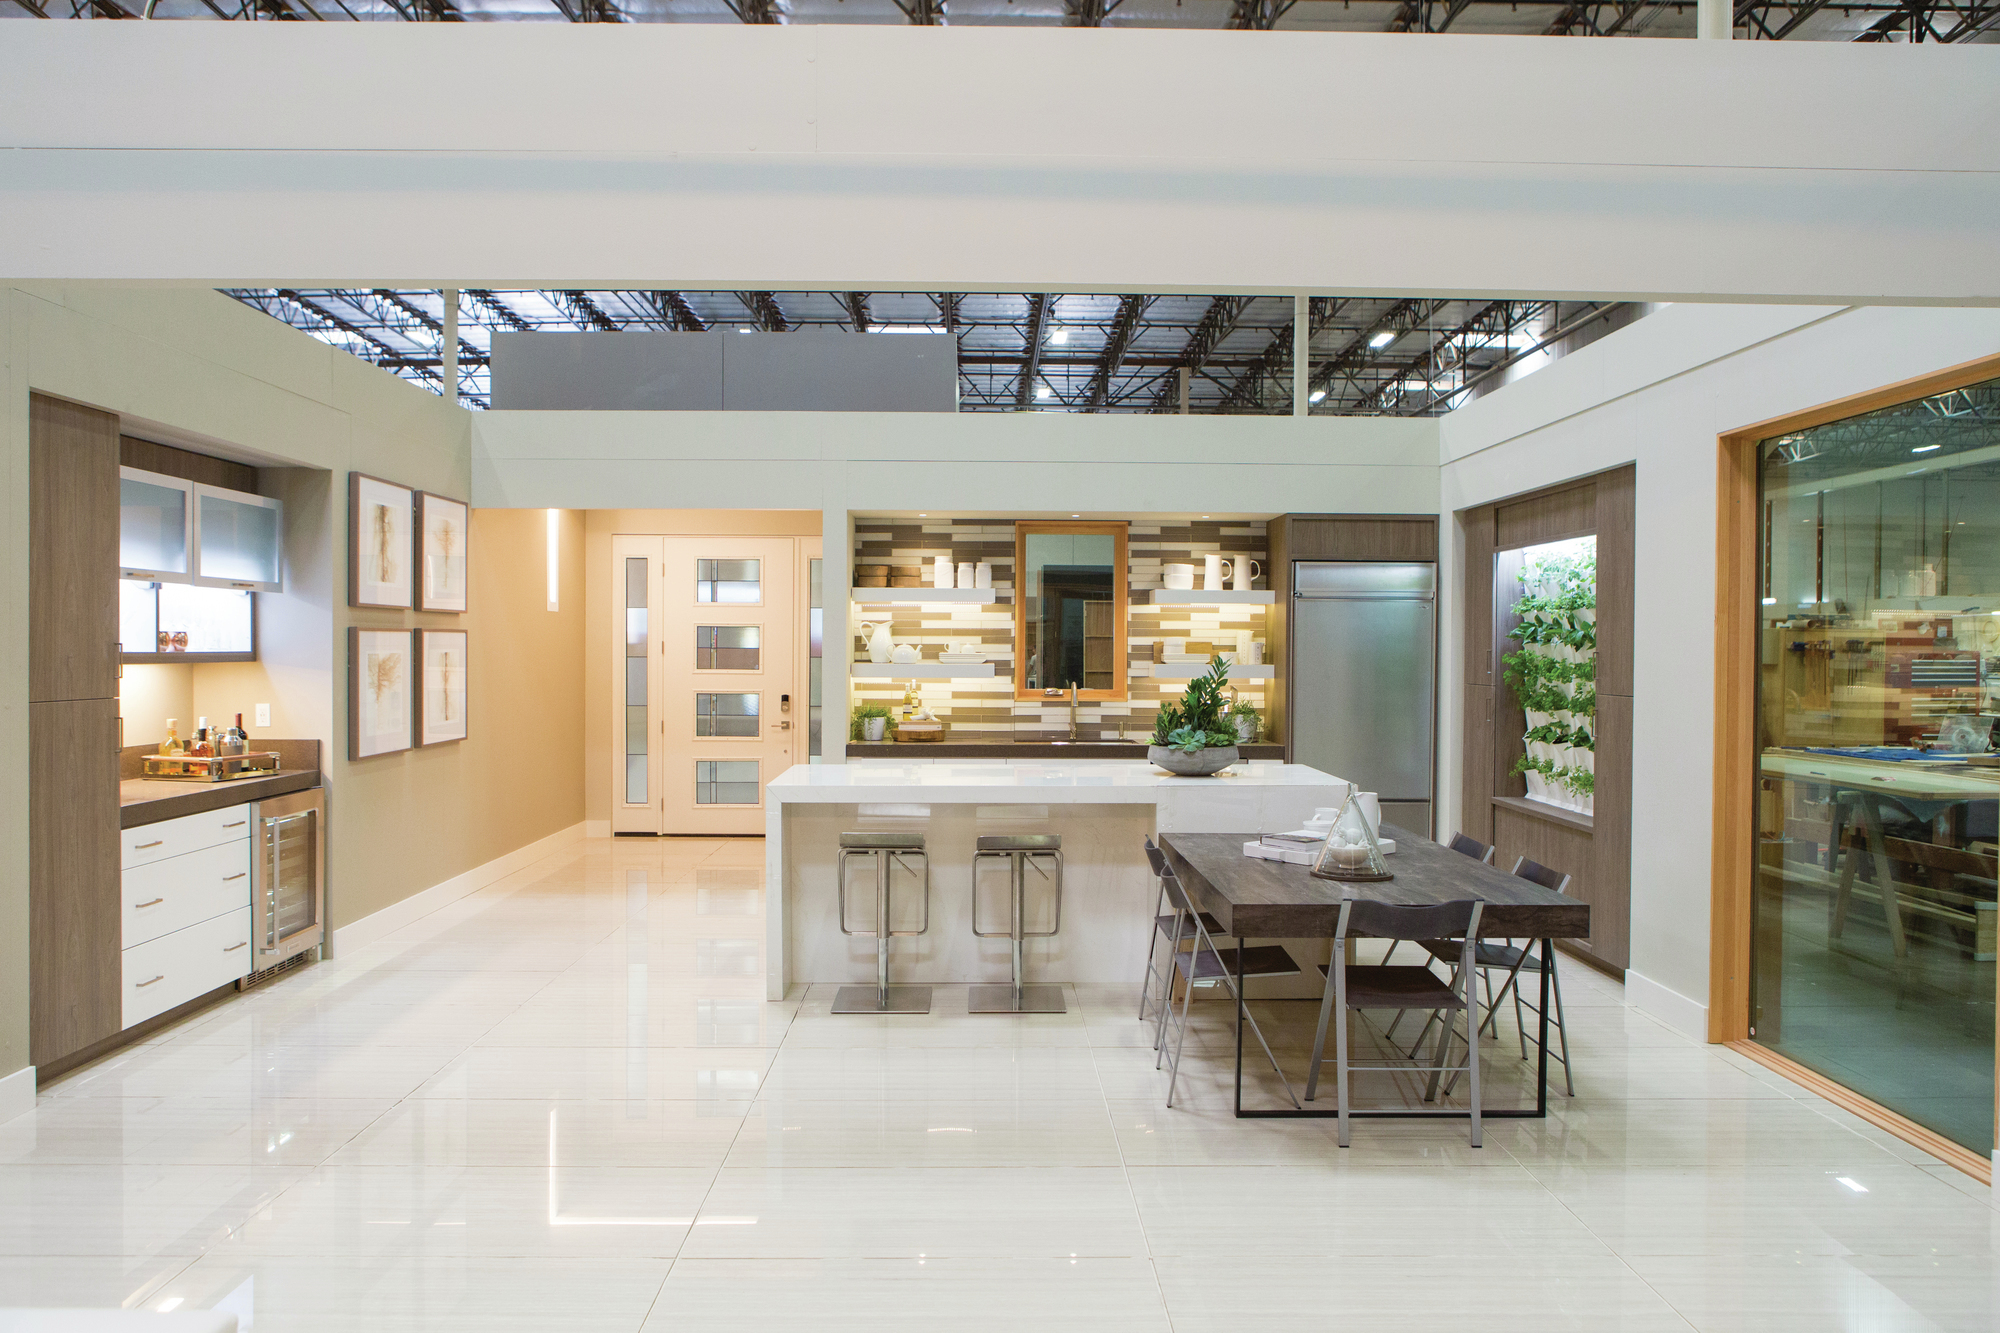 High Performance Products From The Greenbuild Kb Home Projekt Builder Magazine